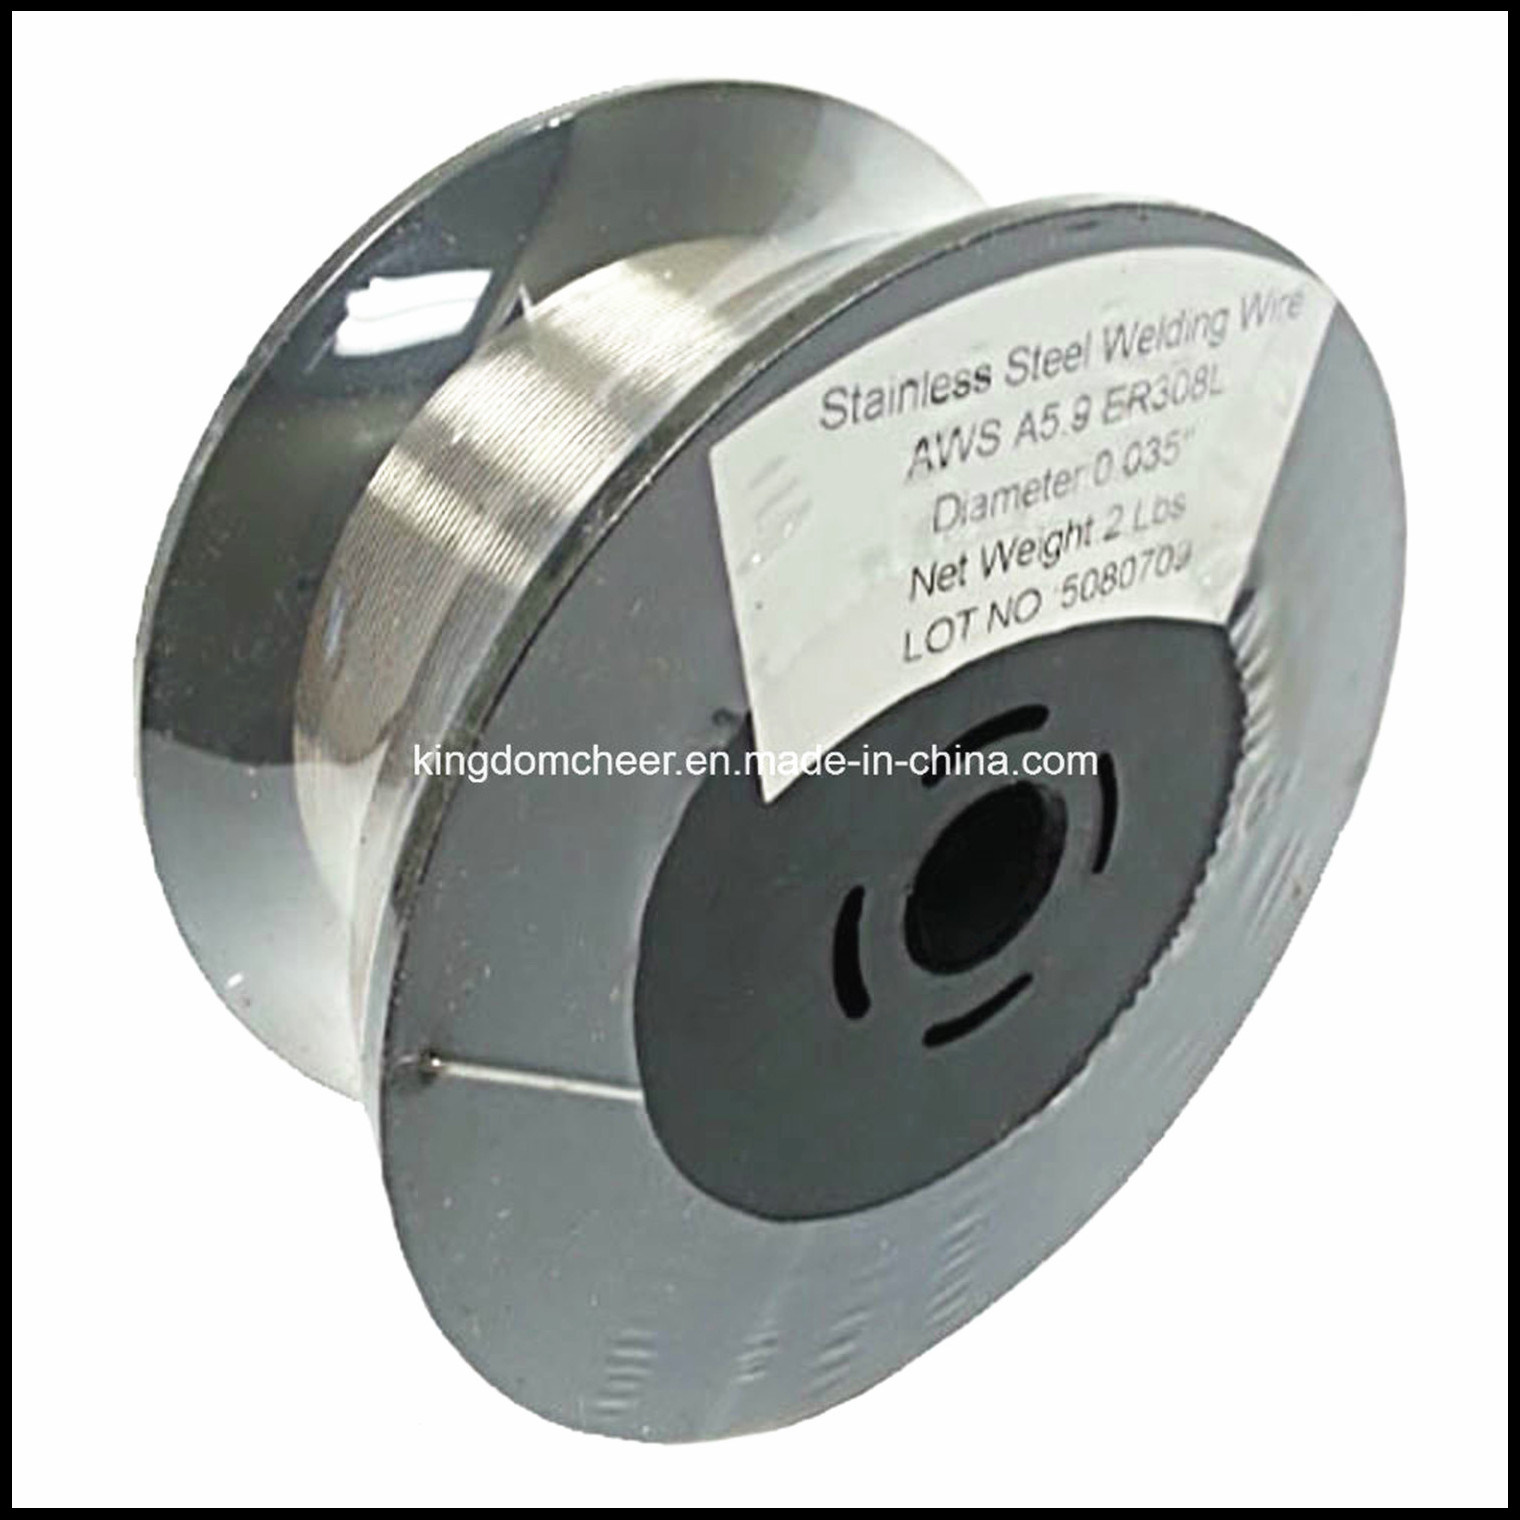 China Aws E71t-GS Self Shielded Flux Cored Welding Wire - China Flux ...